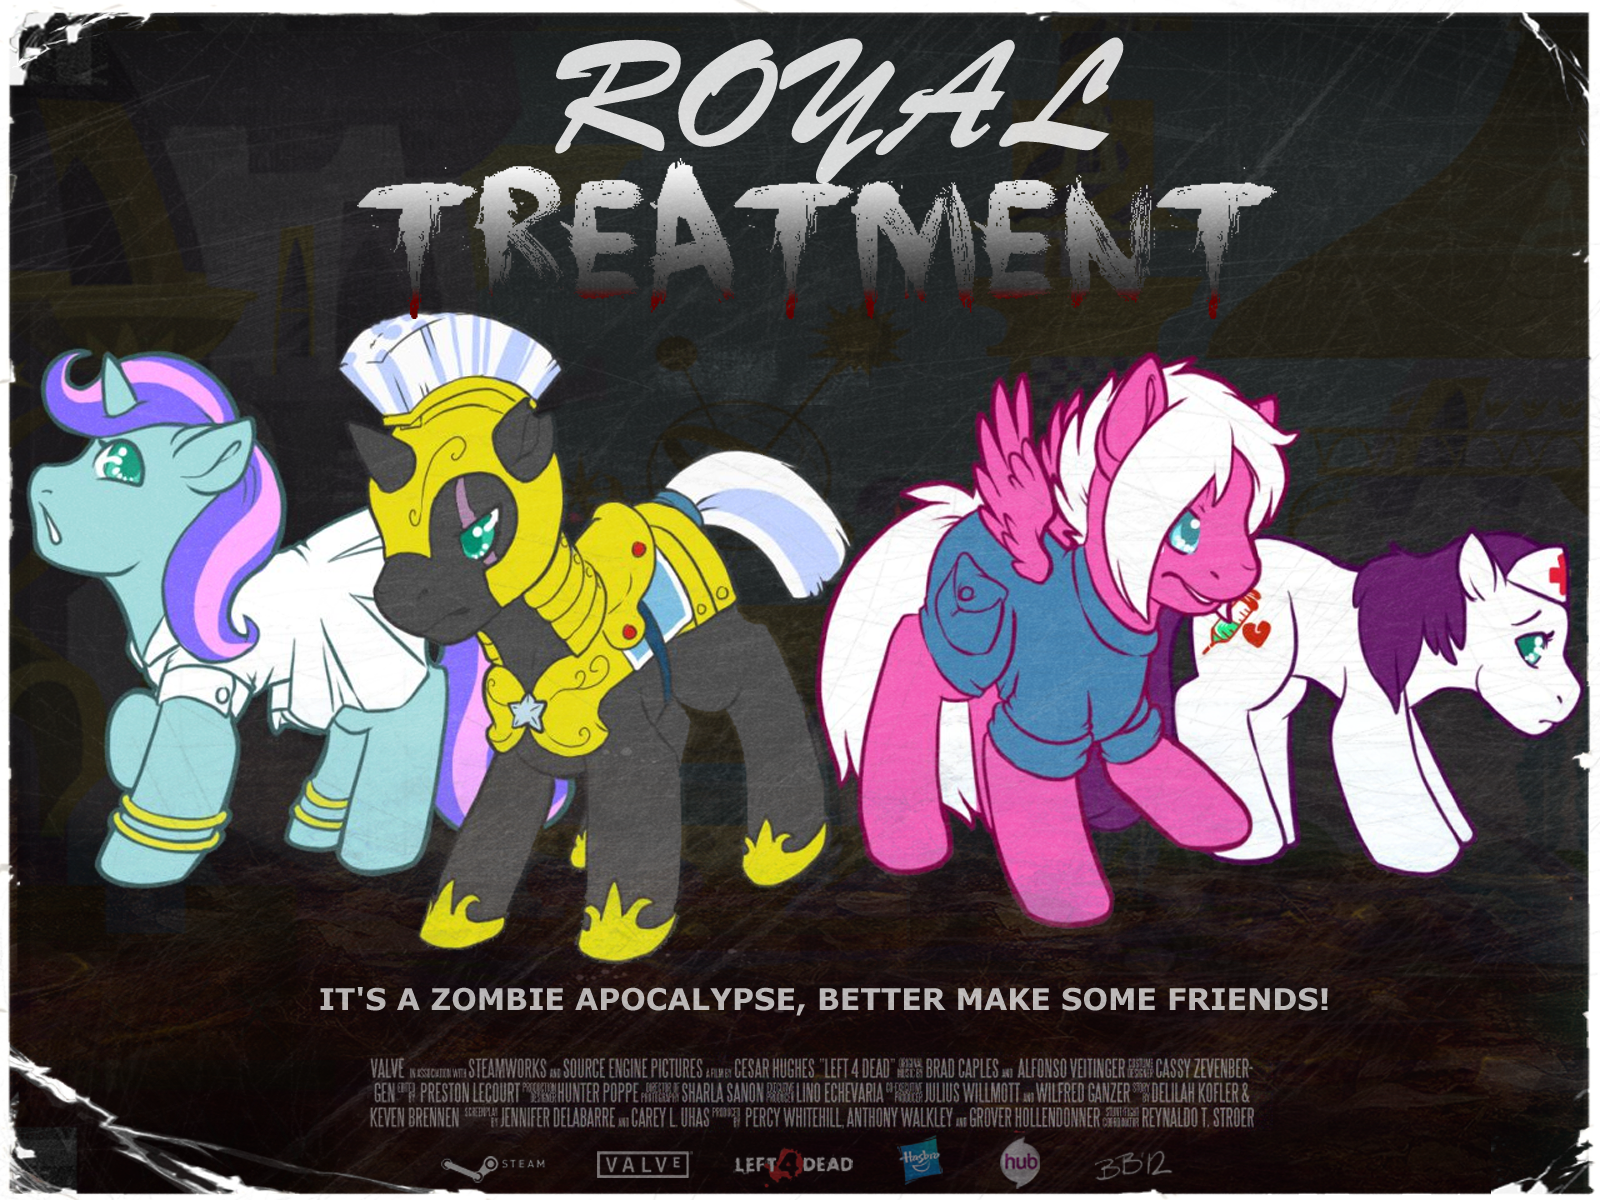 Royal Treatment by BloomingBerry and Dwarf-Ninjas